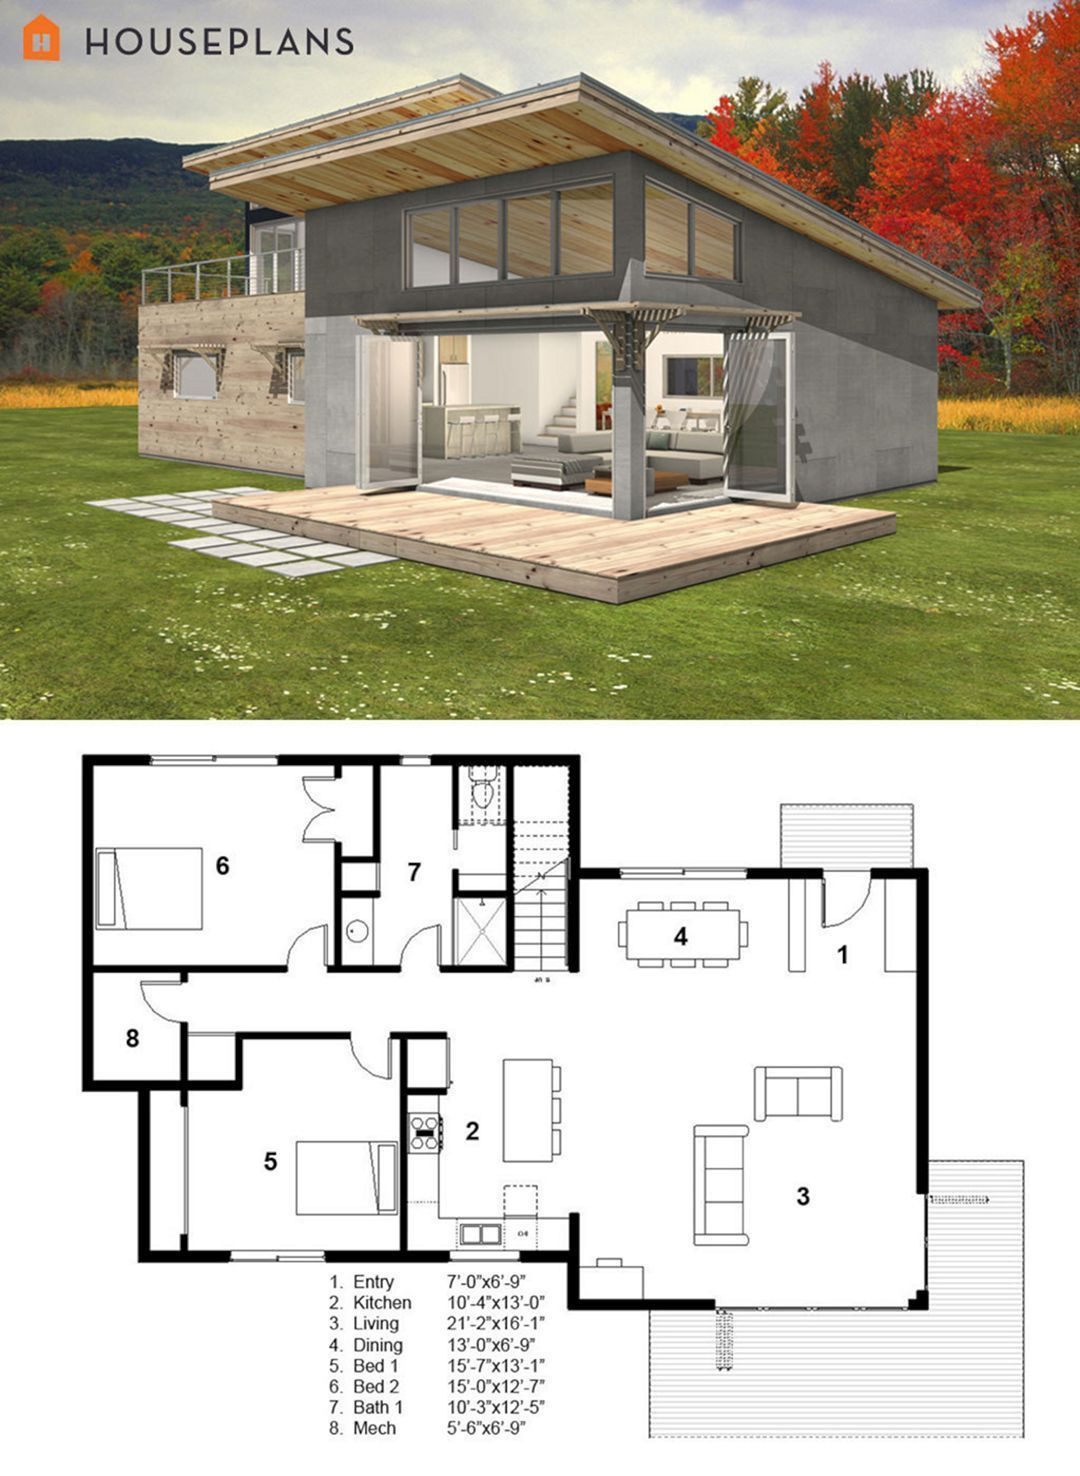 Best Small House Plans Inspirational the Best Modern Tiny House Design Small Homes Inspirations